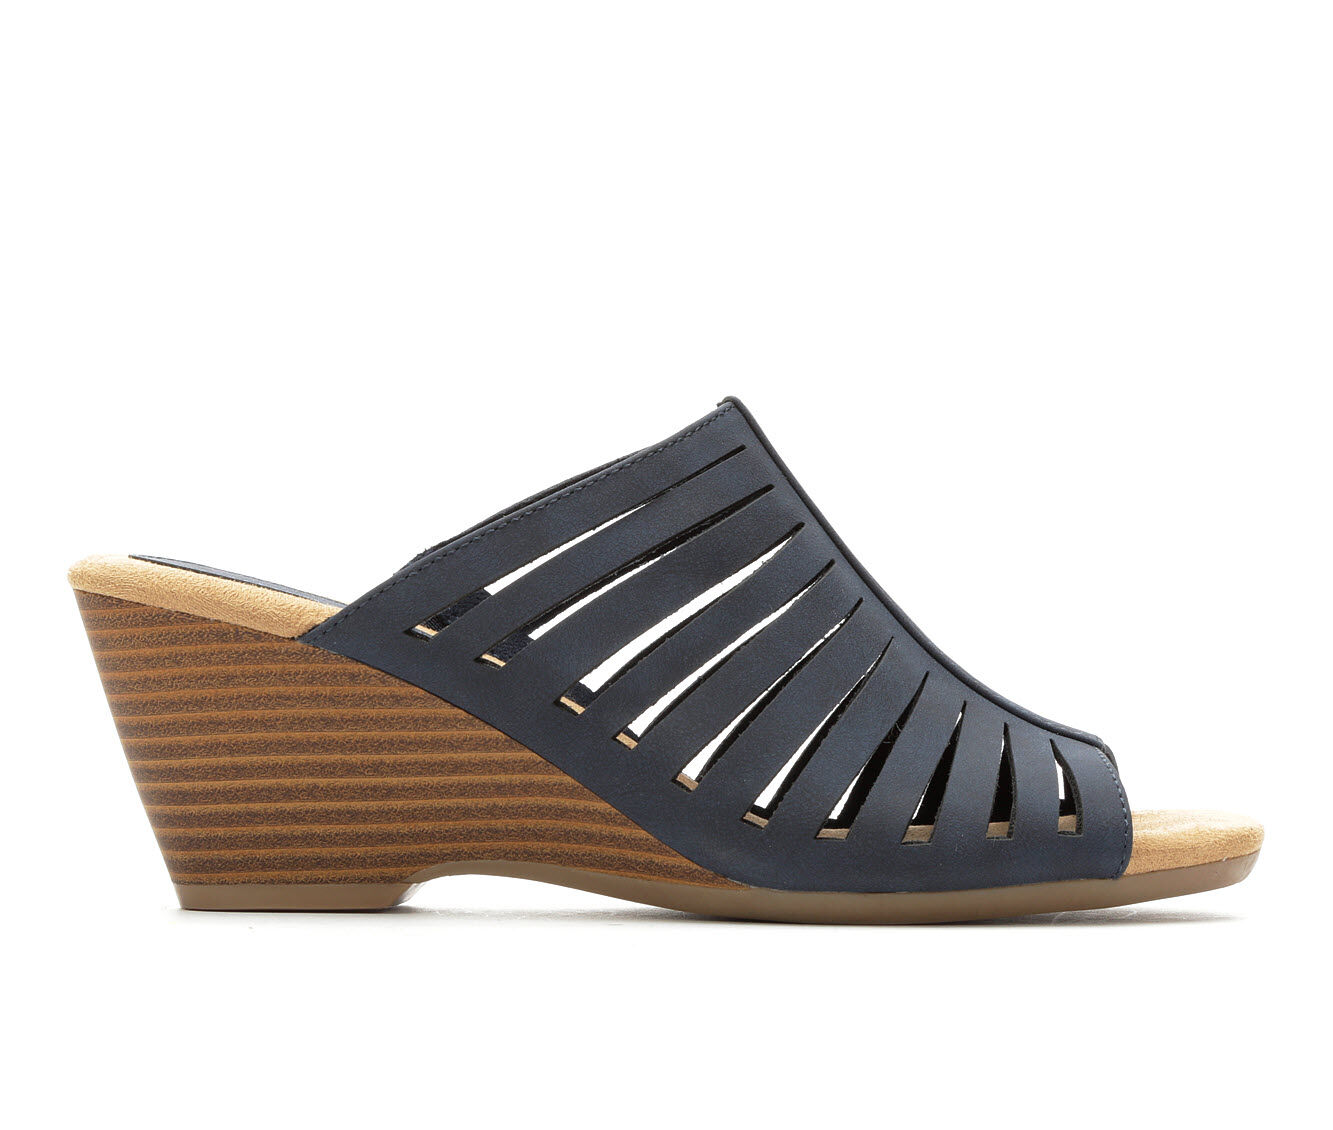 cheapest new Women's Solanz Paige Wedge Sandals Navy